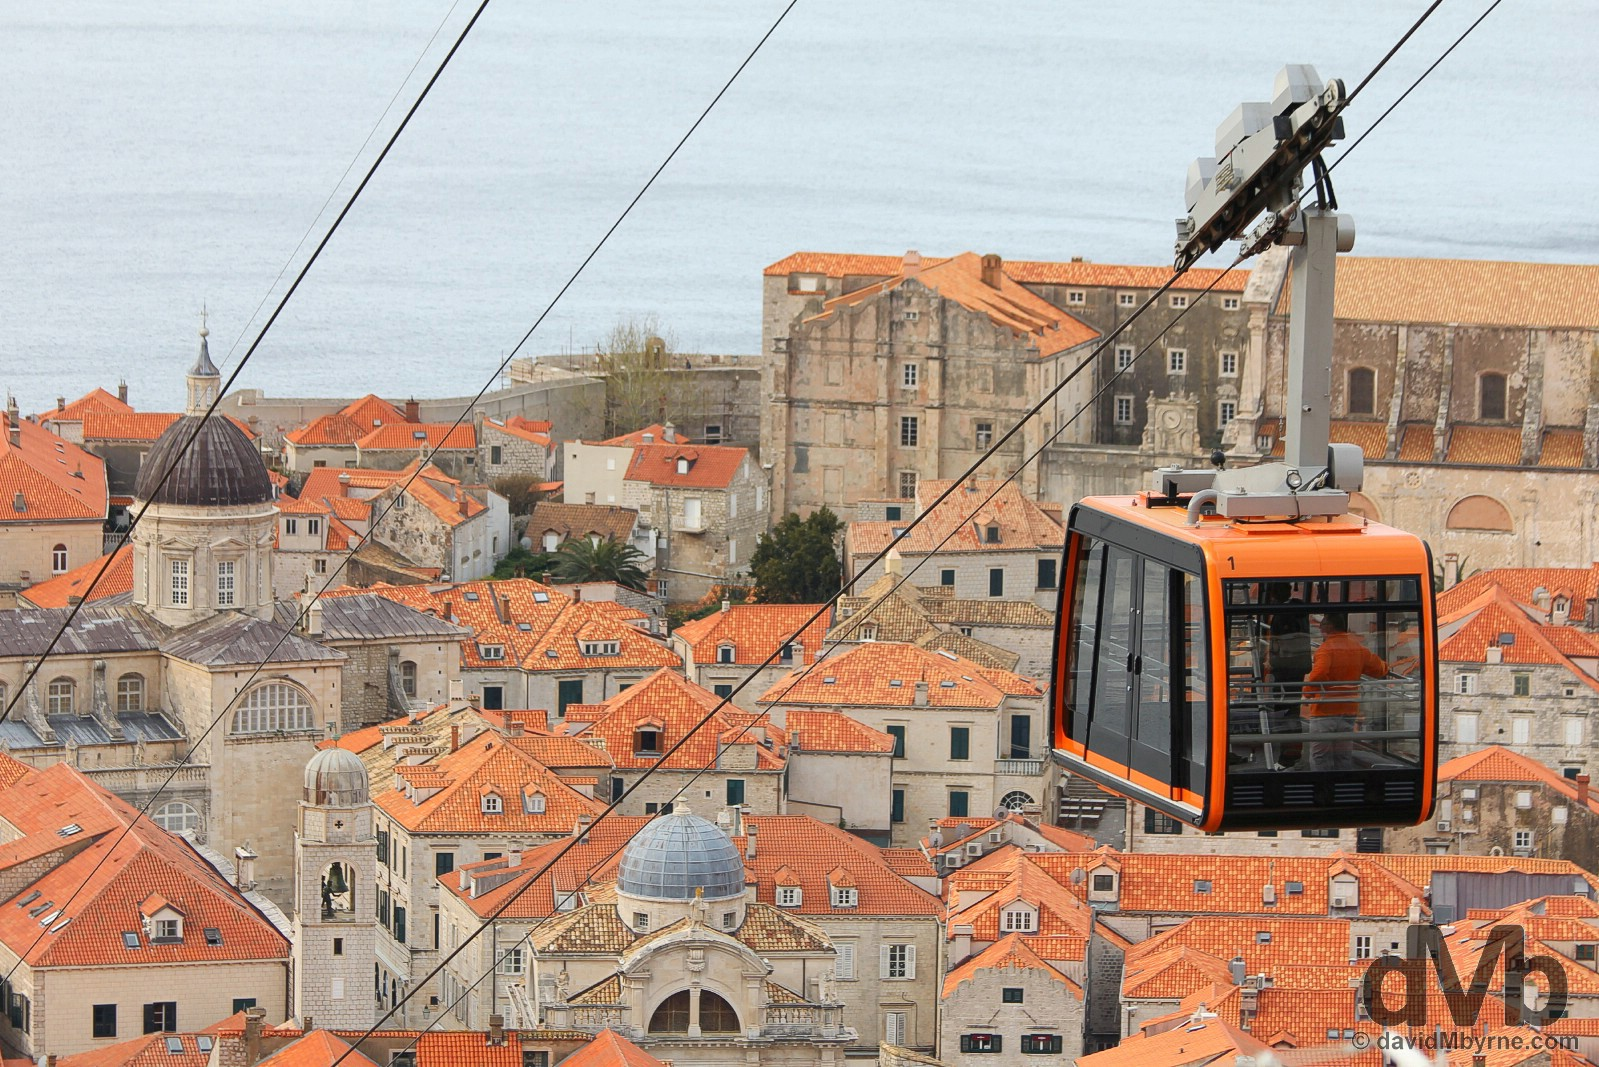 The Dubrovnik Cable Car over the rooftops of Old Town, Dubrovnik, Croatia. April 7, 2015.